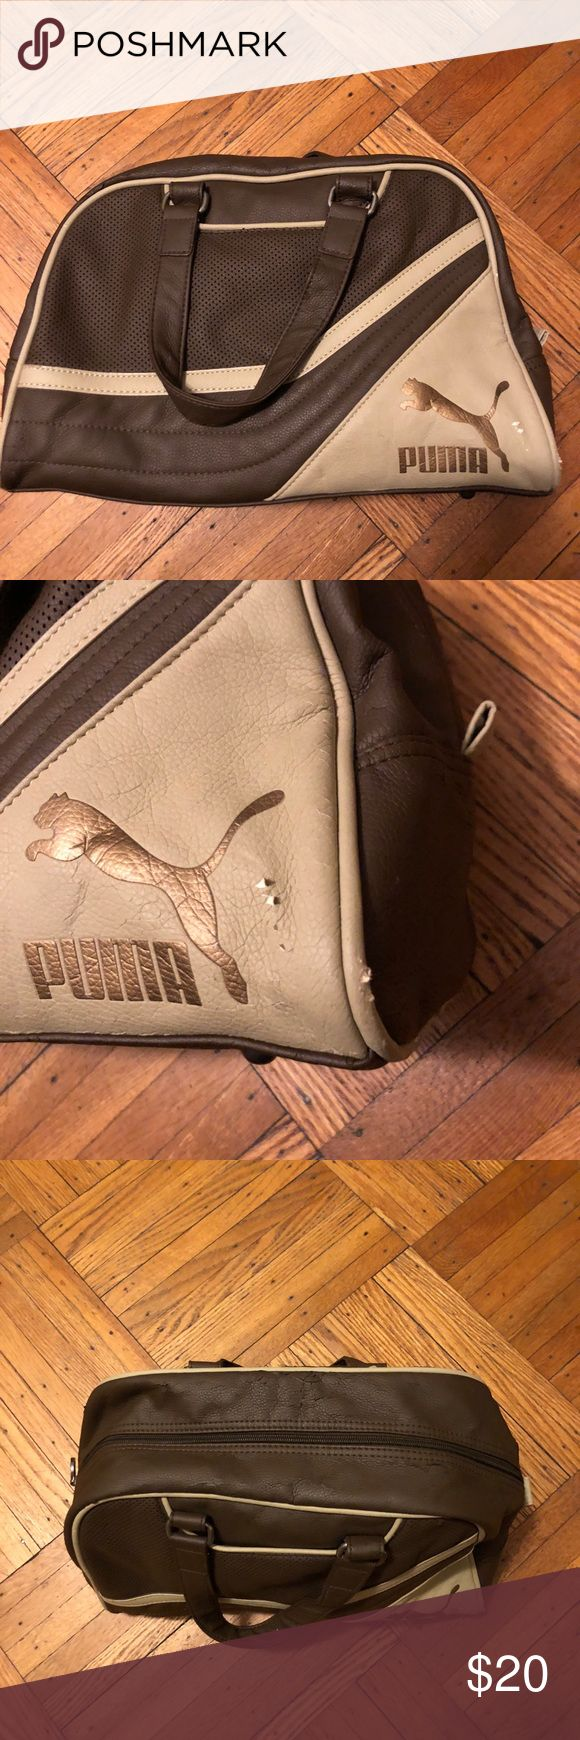 Authentic Puma Bowling Bag Style Bag Authentic Puma bowling bag style sports bag. Item is used has some slight cracking in material. Bag is Brown. Puma Bags Mini Bags